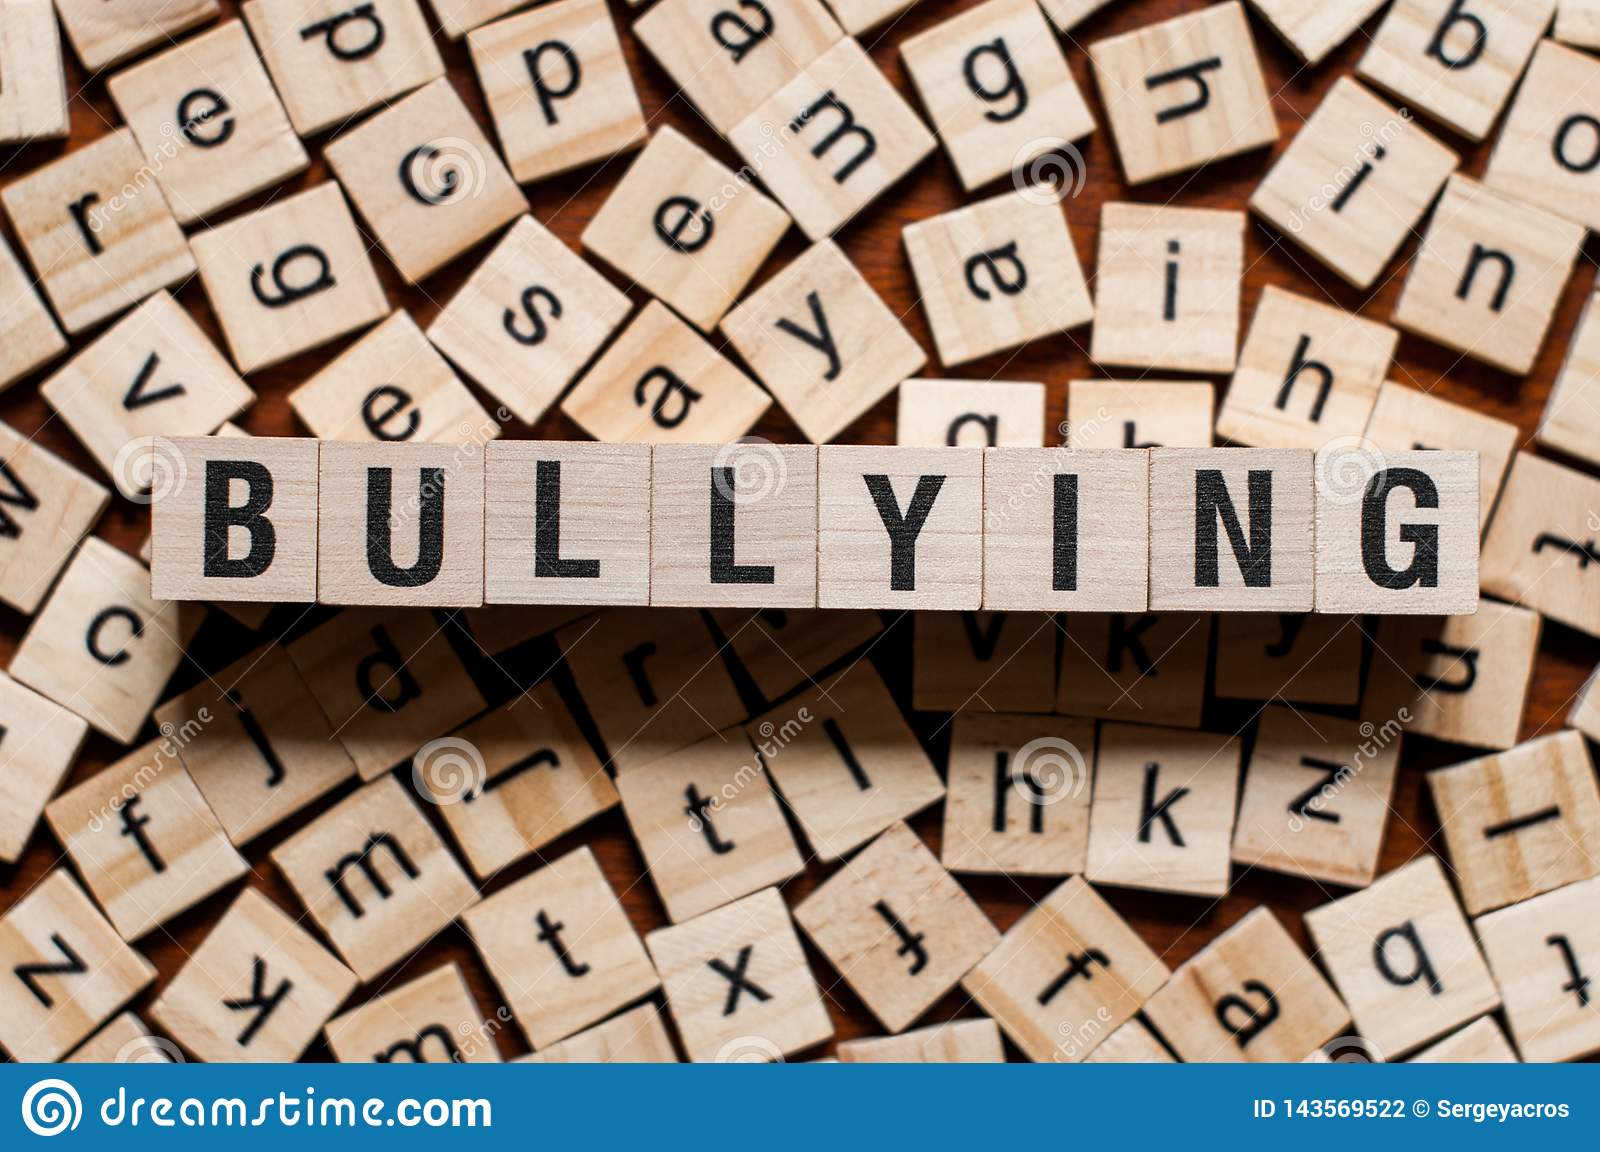 Bullying word concept